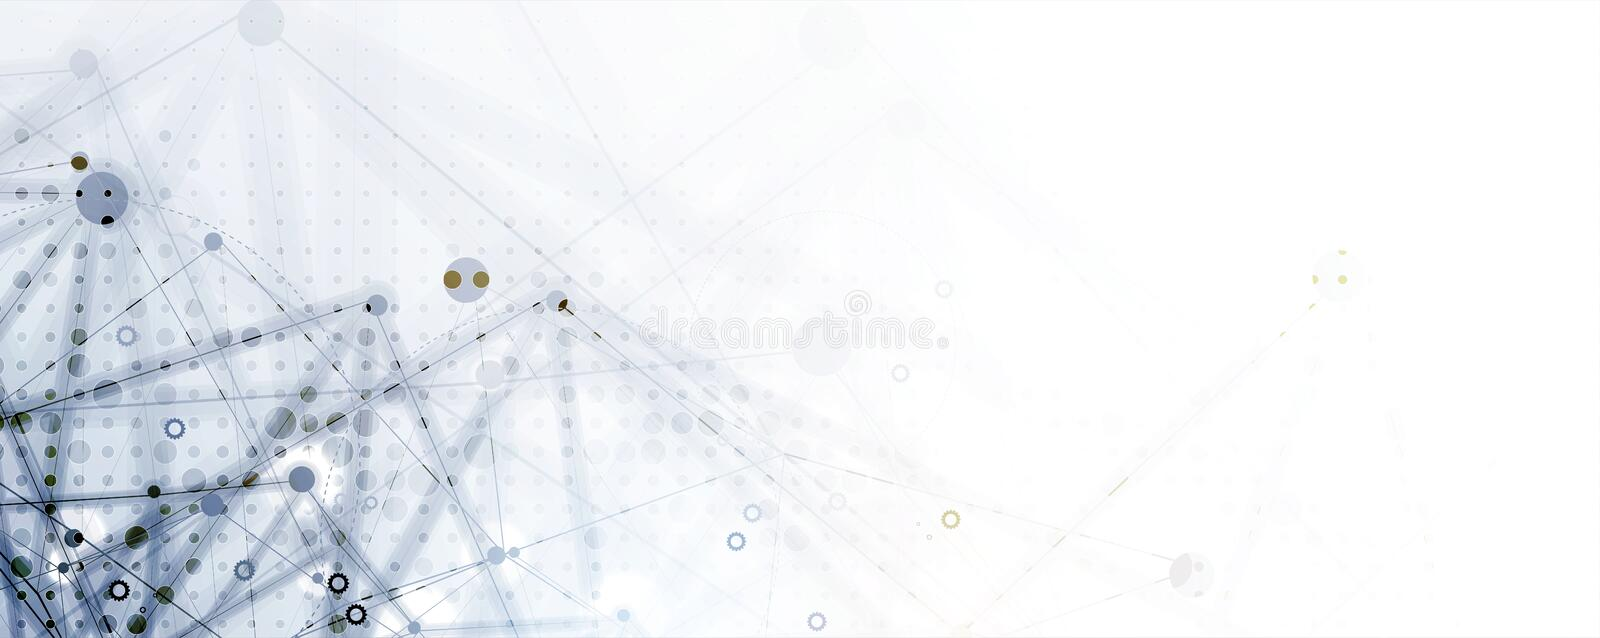 Technology data background, idea of global business solution. Technology innovation background, idea of global business solution royalty free illustration